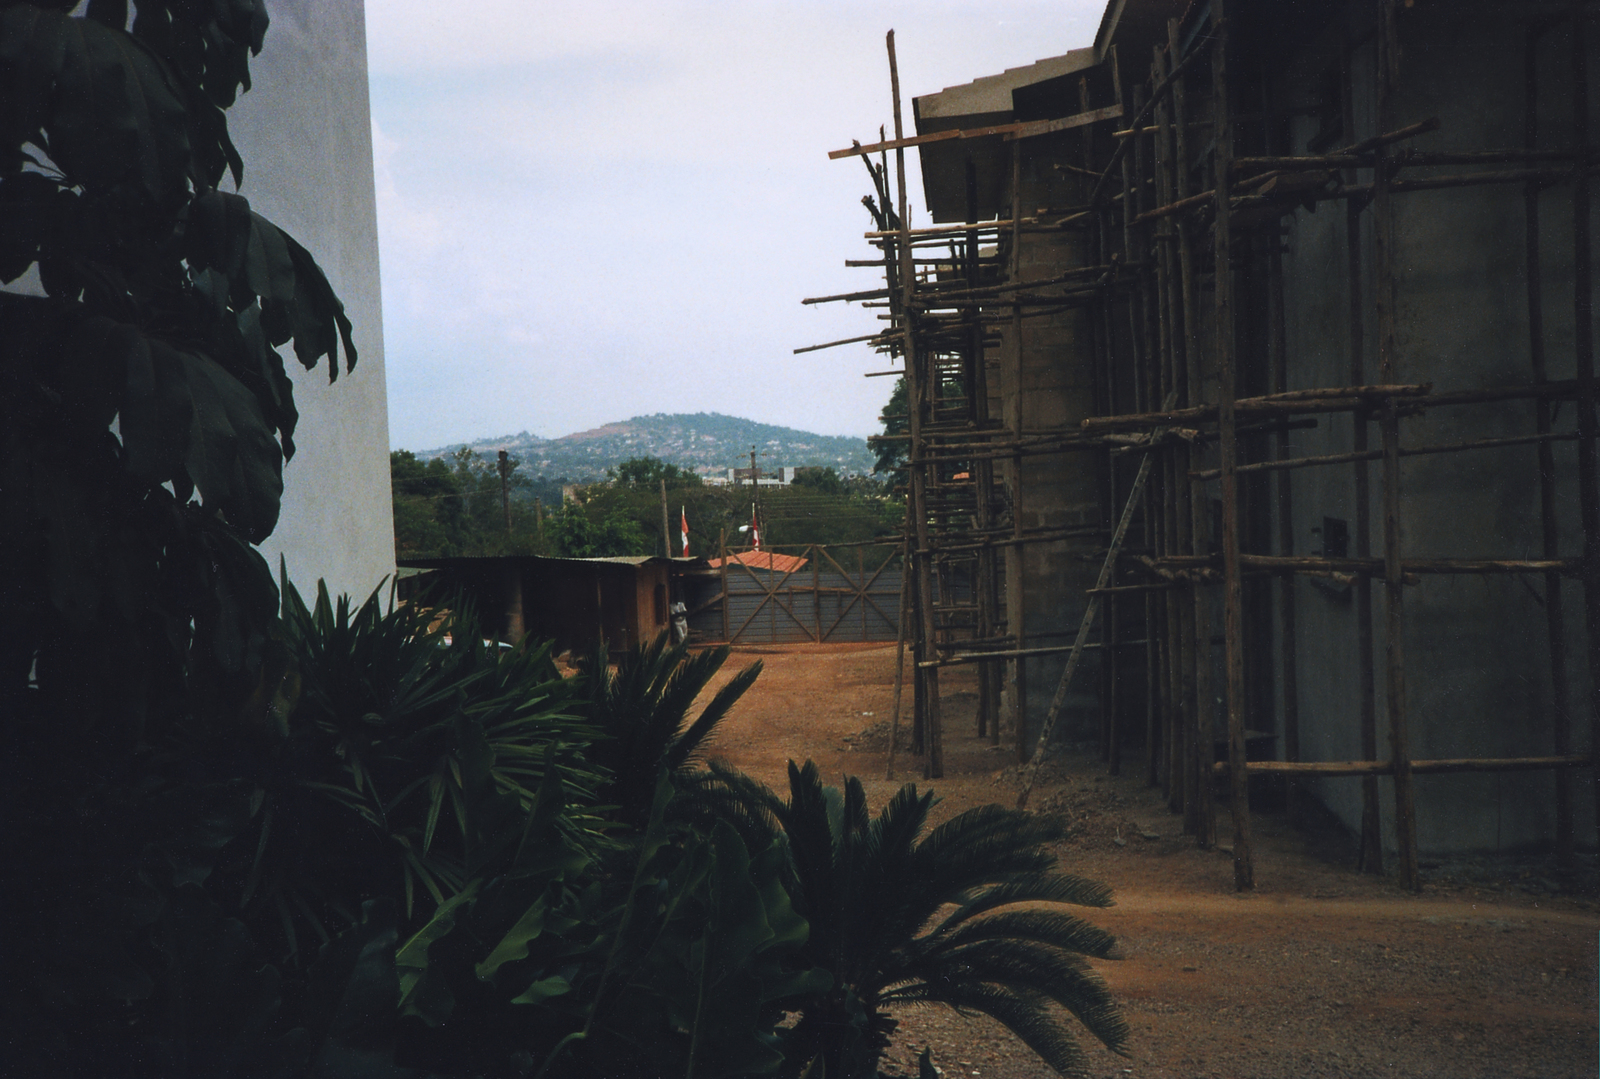 Abidjan - Compound Site - 1997